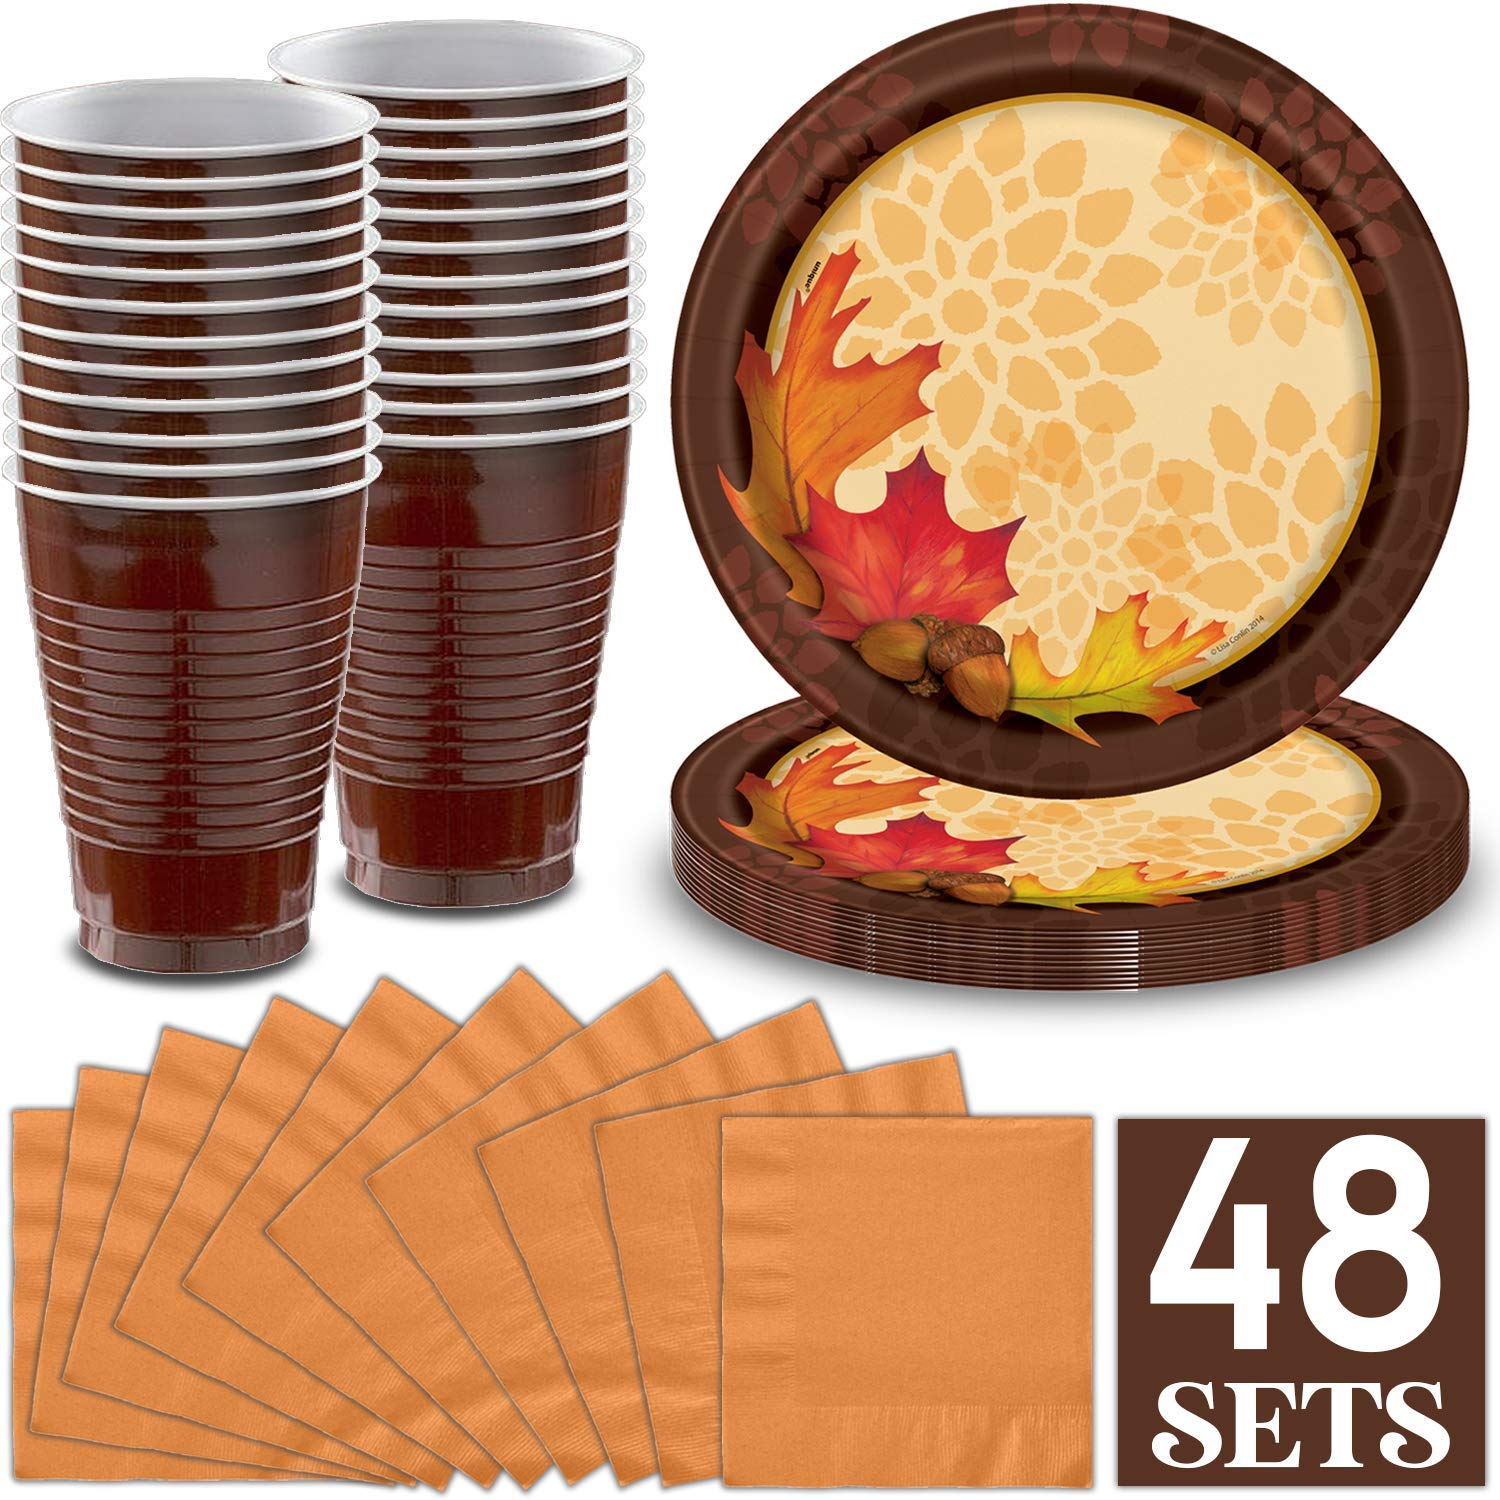 Fall Season & Thanksgiving Party Supplies for 48 - Large Plates with Leaf design, Brown Plastic Cups, Pumpkin Color Napkins, Great Autumn Decorative Tableware Set by HeroFiber